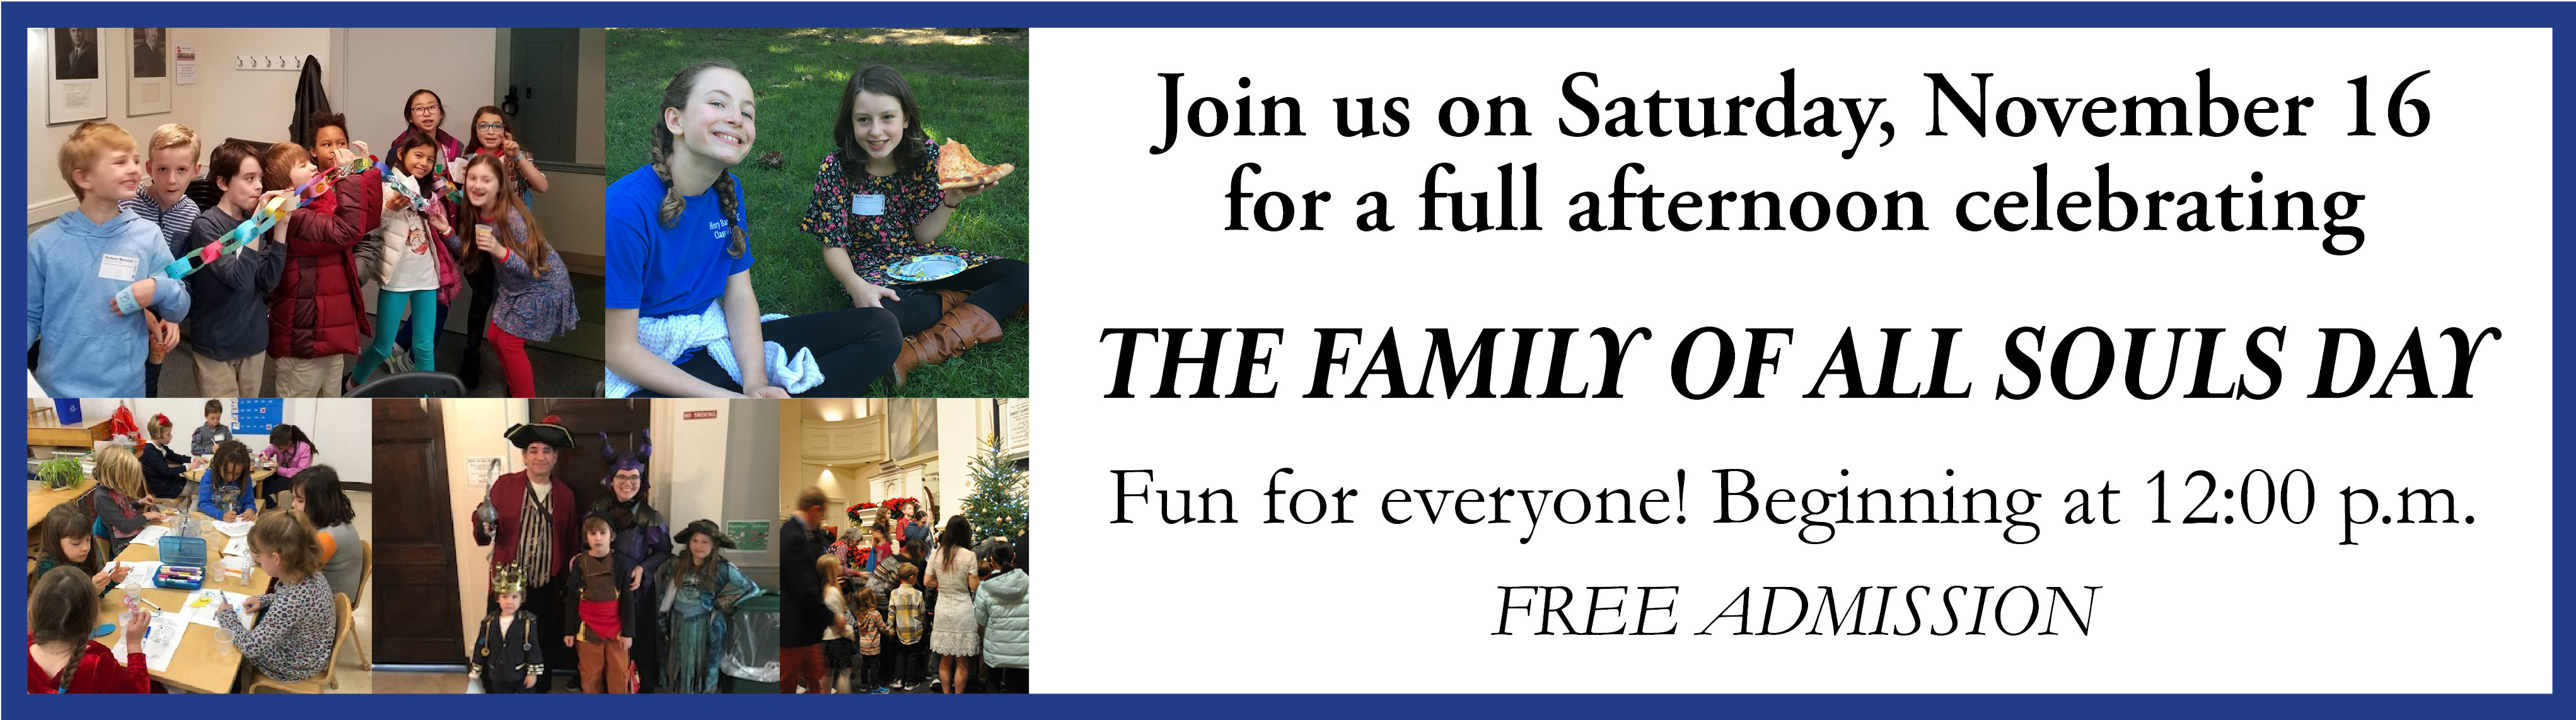 Join us on Saturday, November 16 for a full afternoon celebrating The Family of All Souls Day Fun for everyone! Beginning at 12:00 p.m. FREE ADMISSION